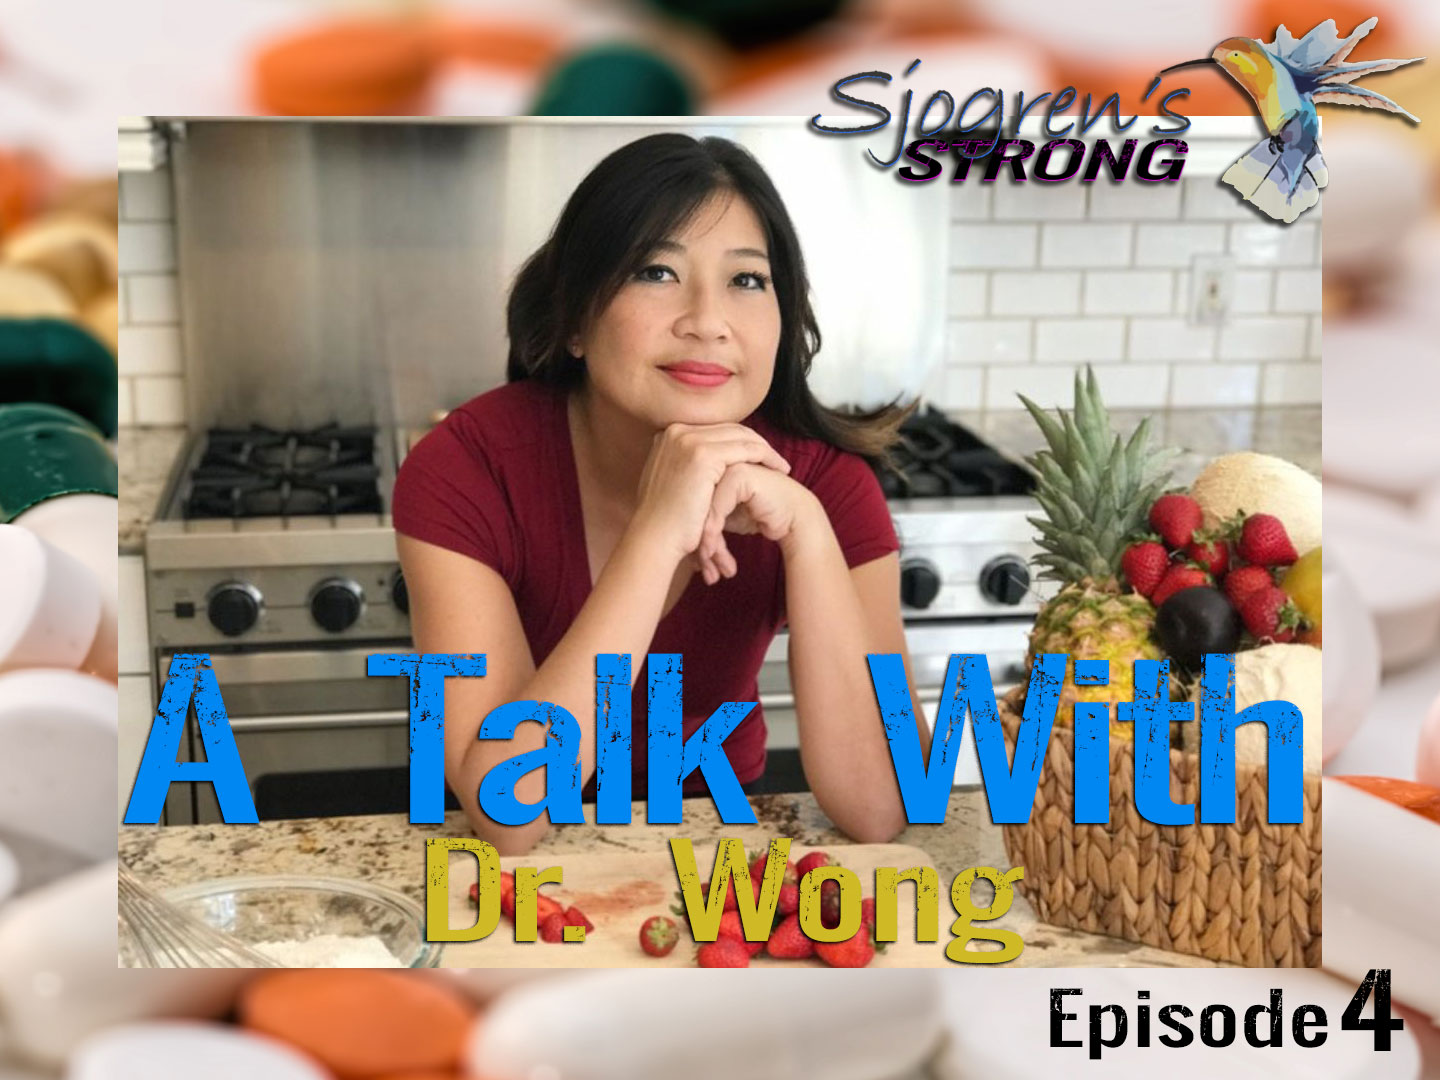 A Talk with Dr. Wong